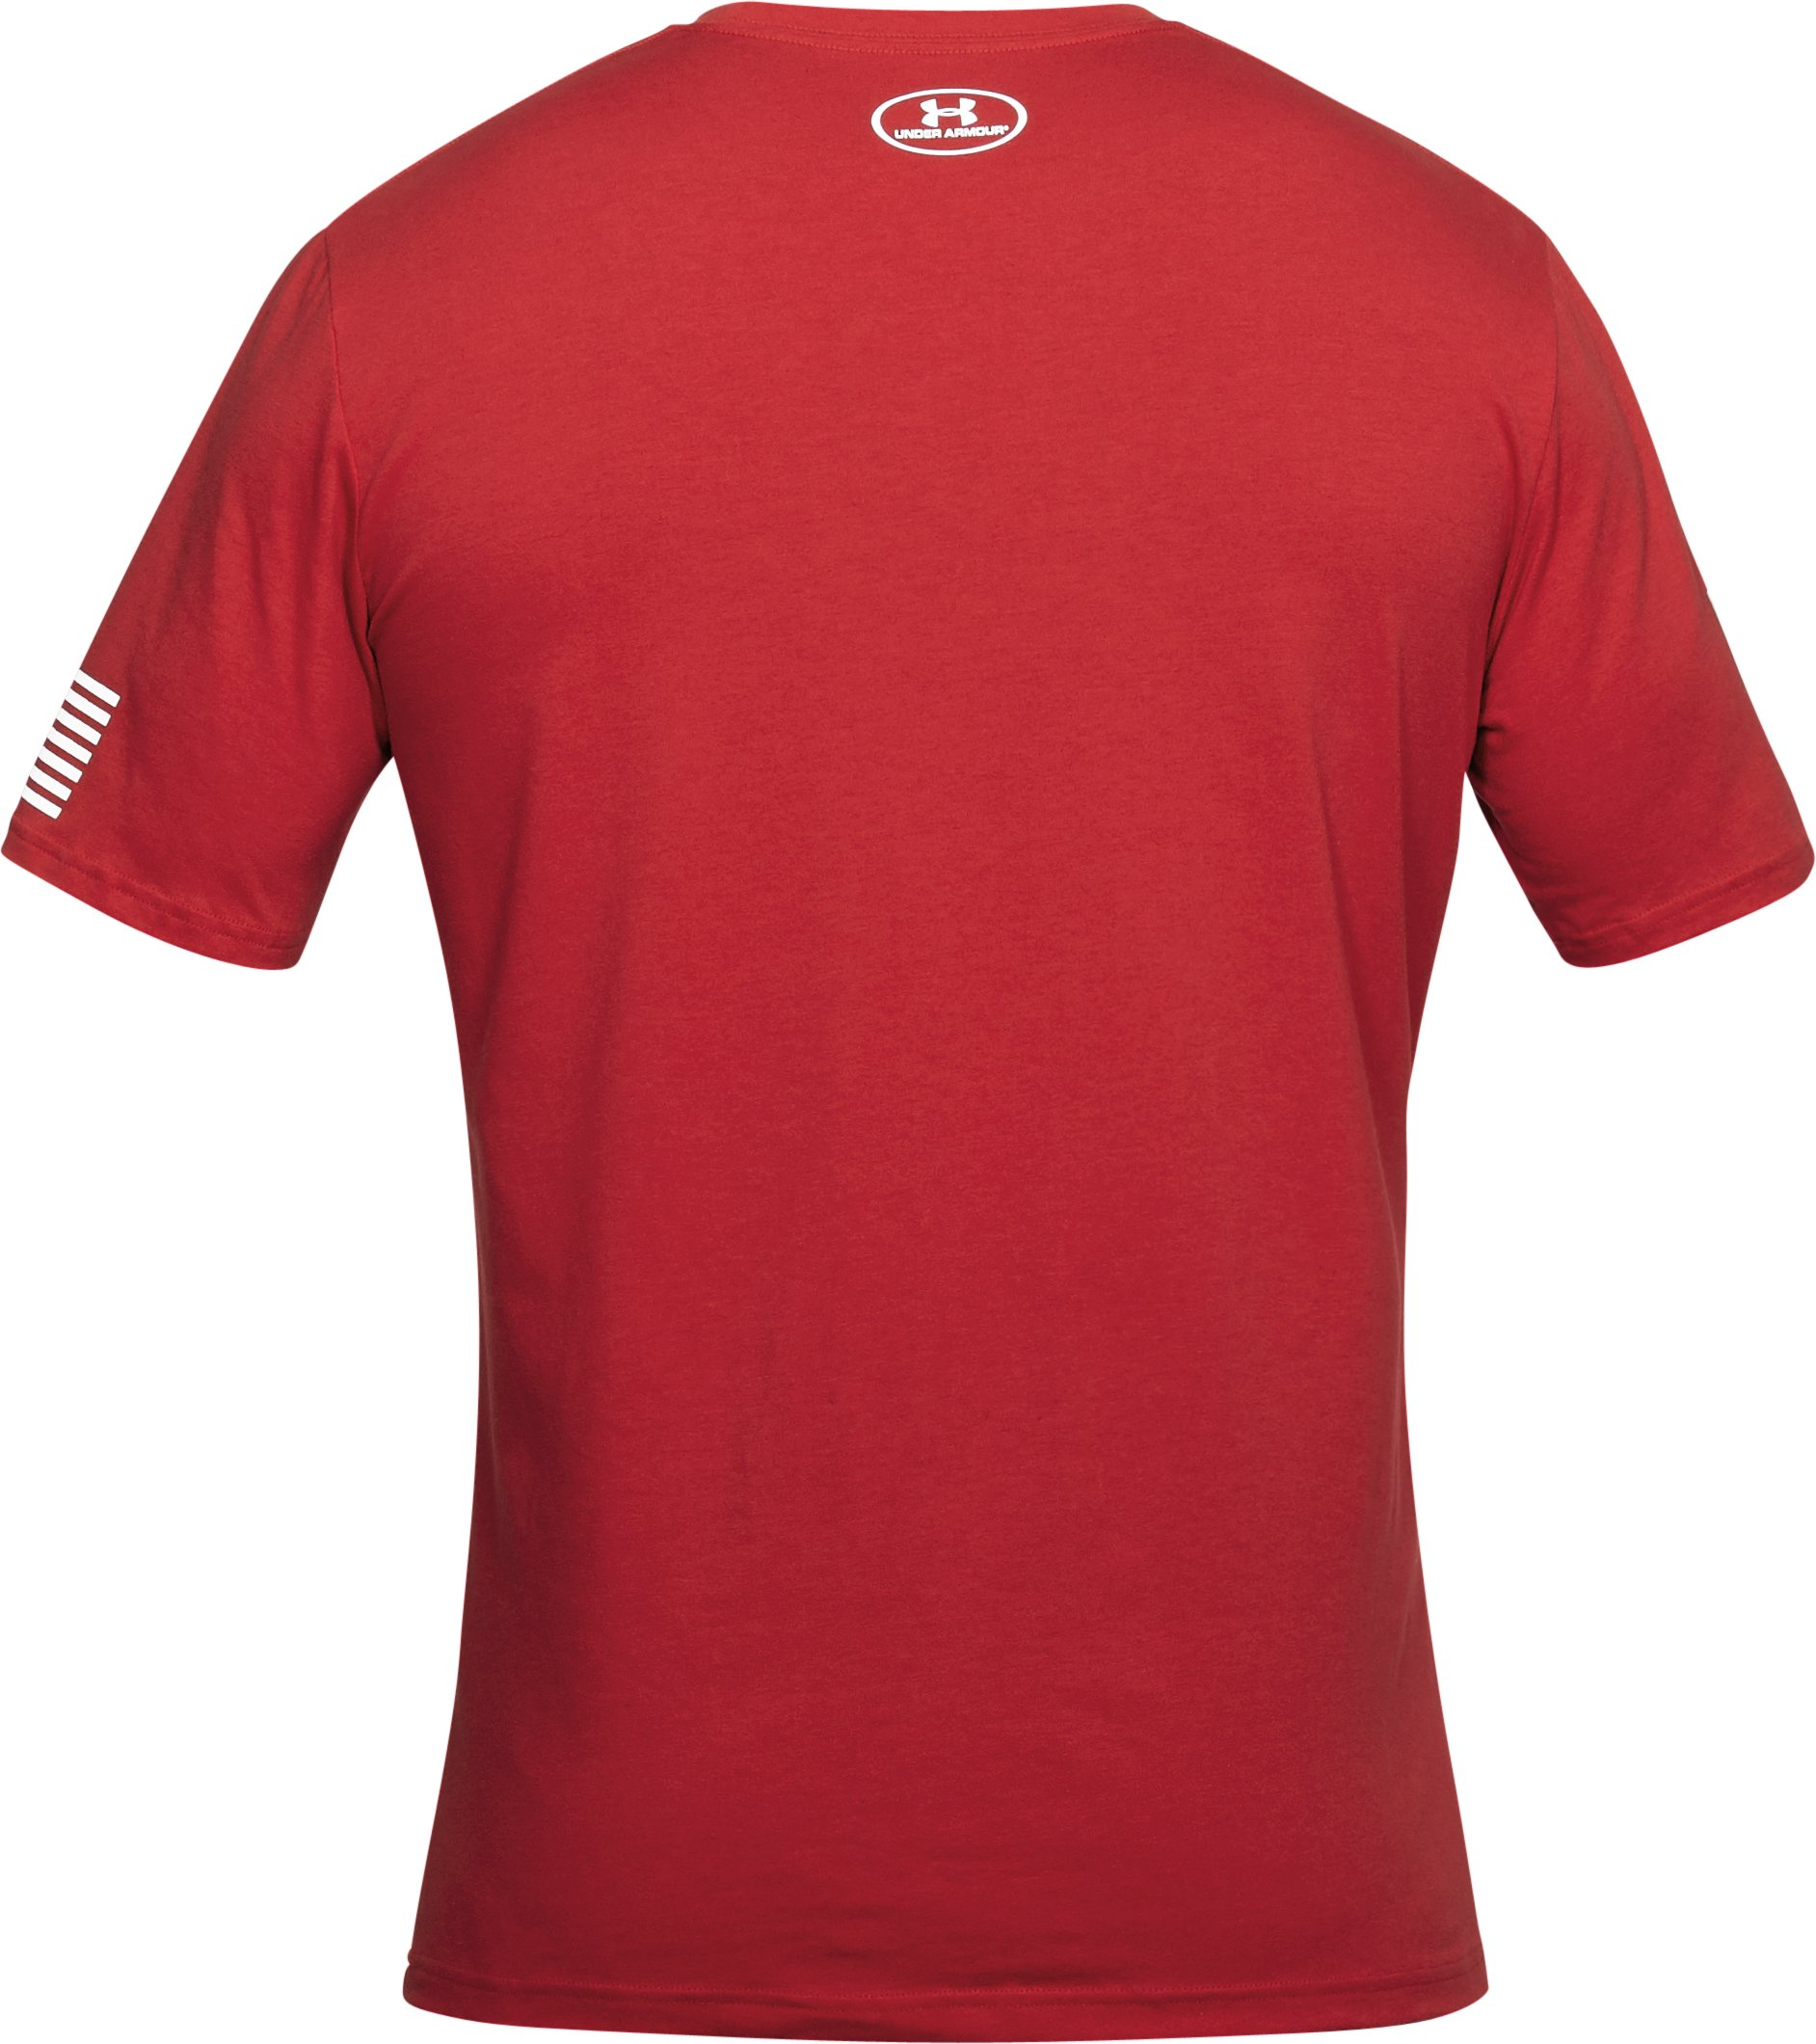 Men's UA USA Verbiage T-Shirt, Red, undefined